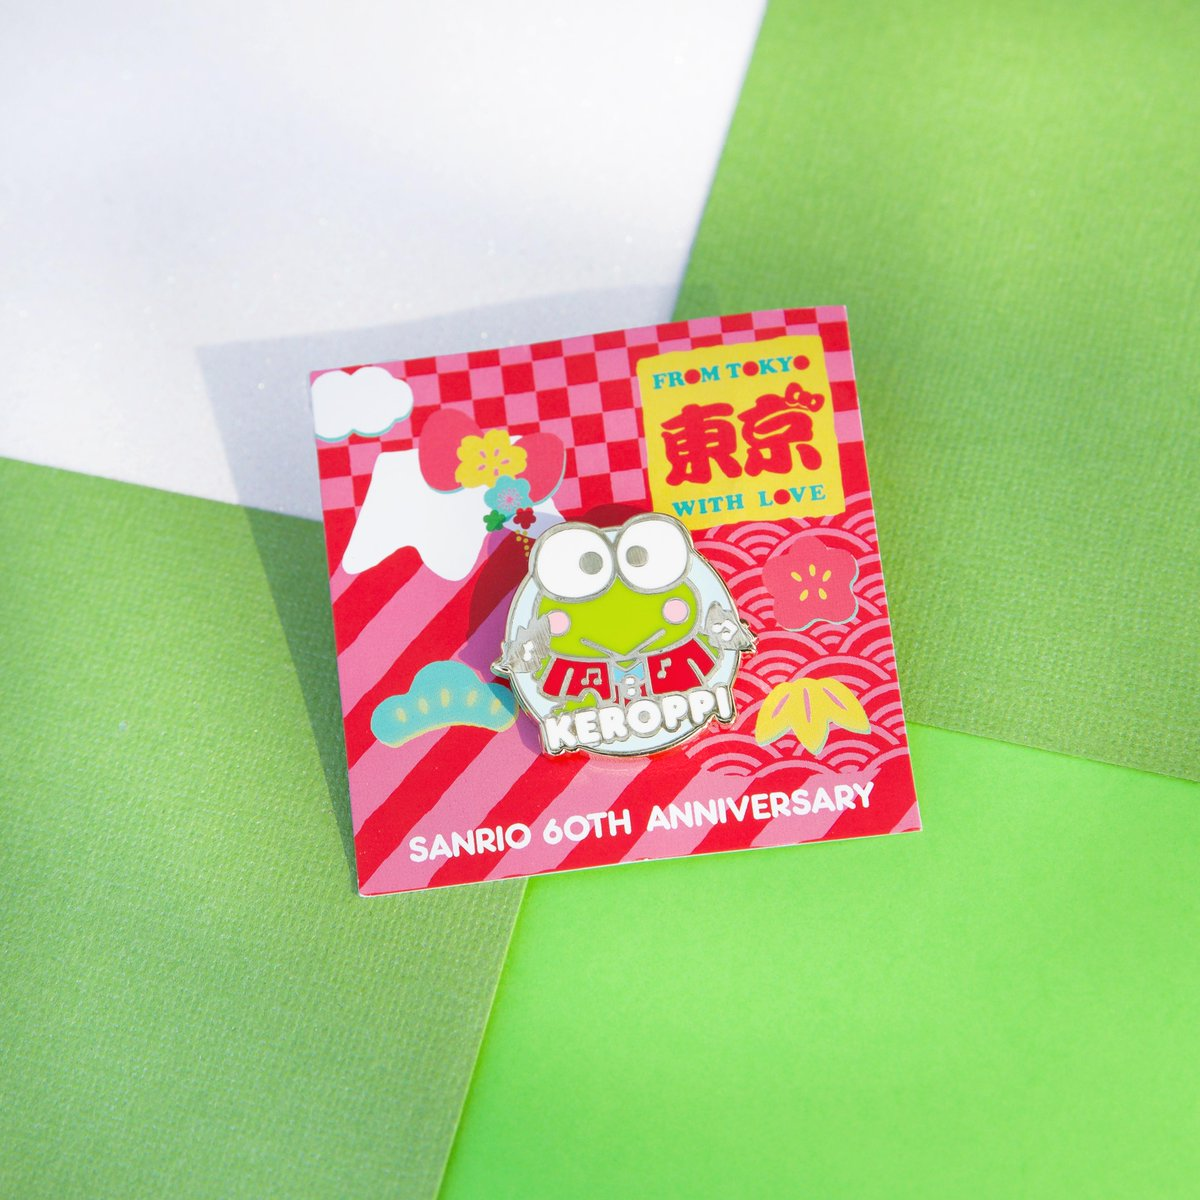 New Friend of the Month pin is here! 💚 Hop to it and get this collectible #Keroppi pin FREE when you spend $35 or more in Sanrio stores and online with code JUNEPIN20: bit.ly/2YWWRGW #Sanrio60